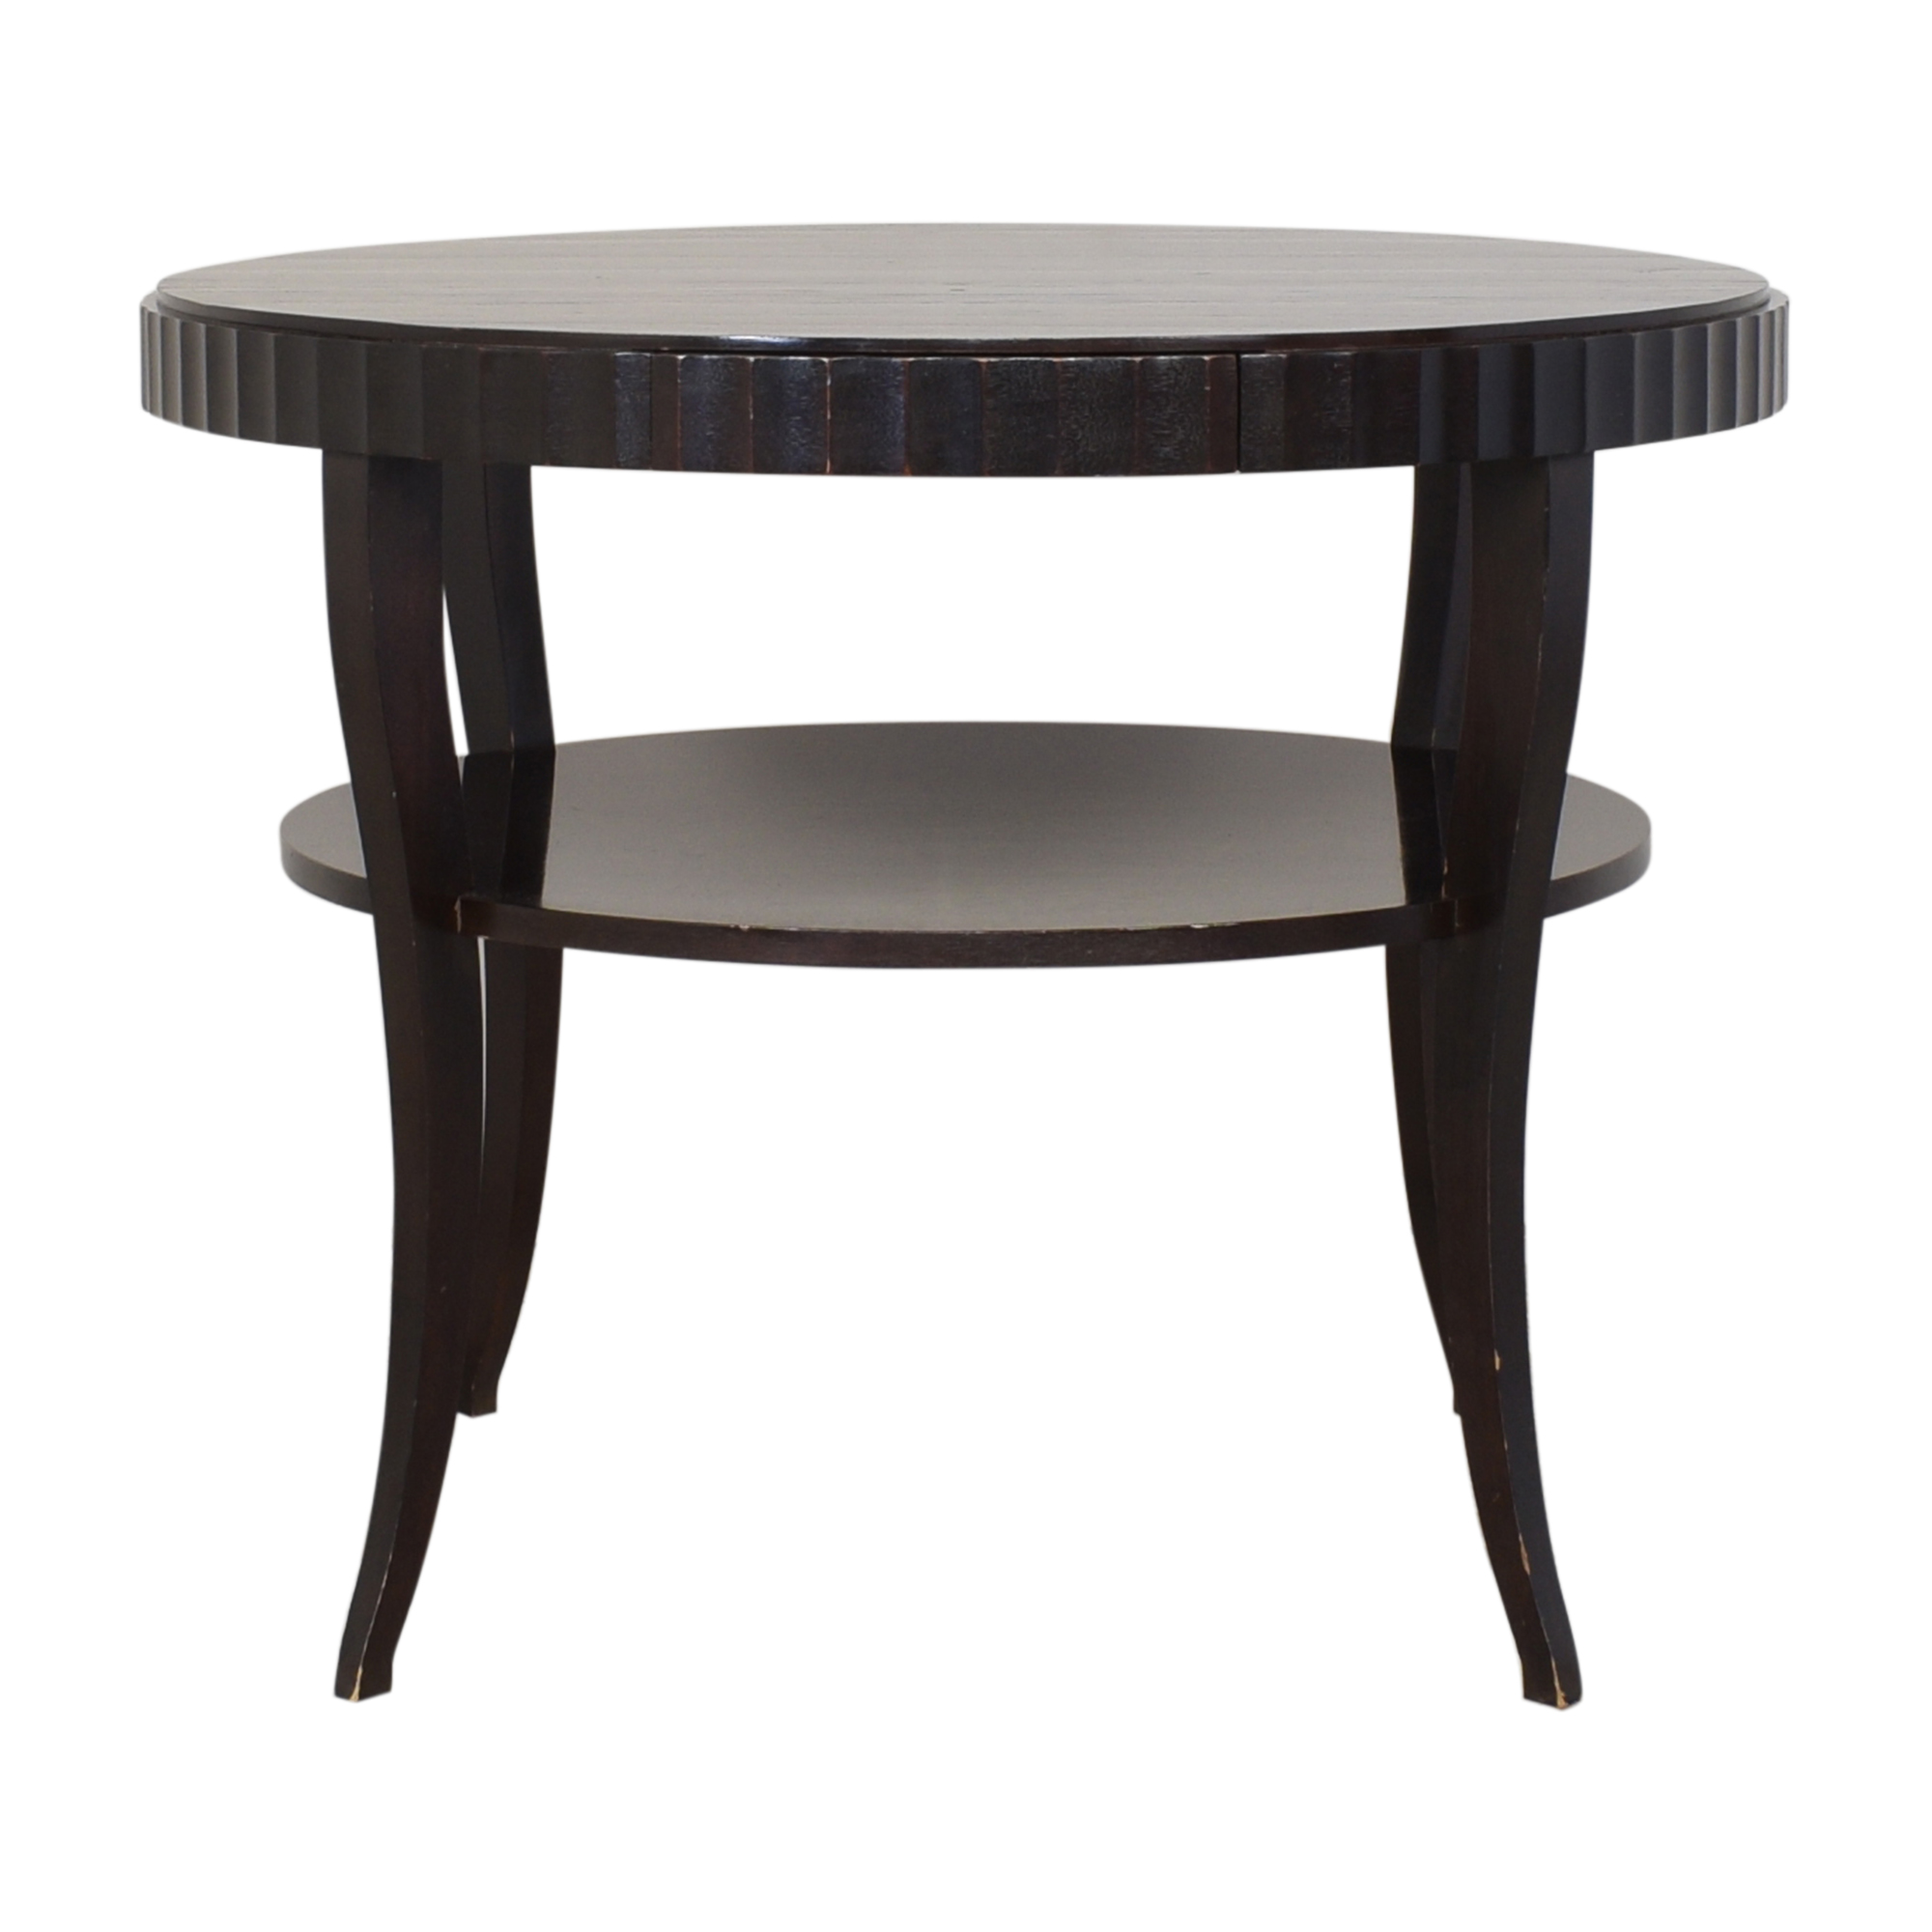 shop Baker Furniture Barbara Barry for Baker Fluted Edge Center Table online